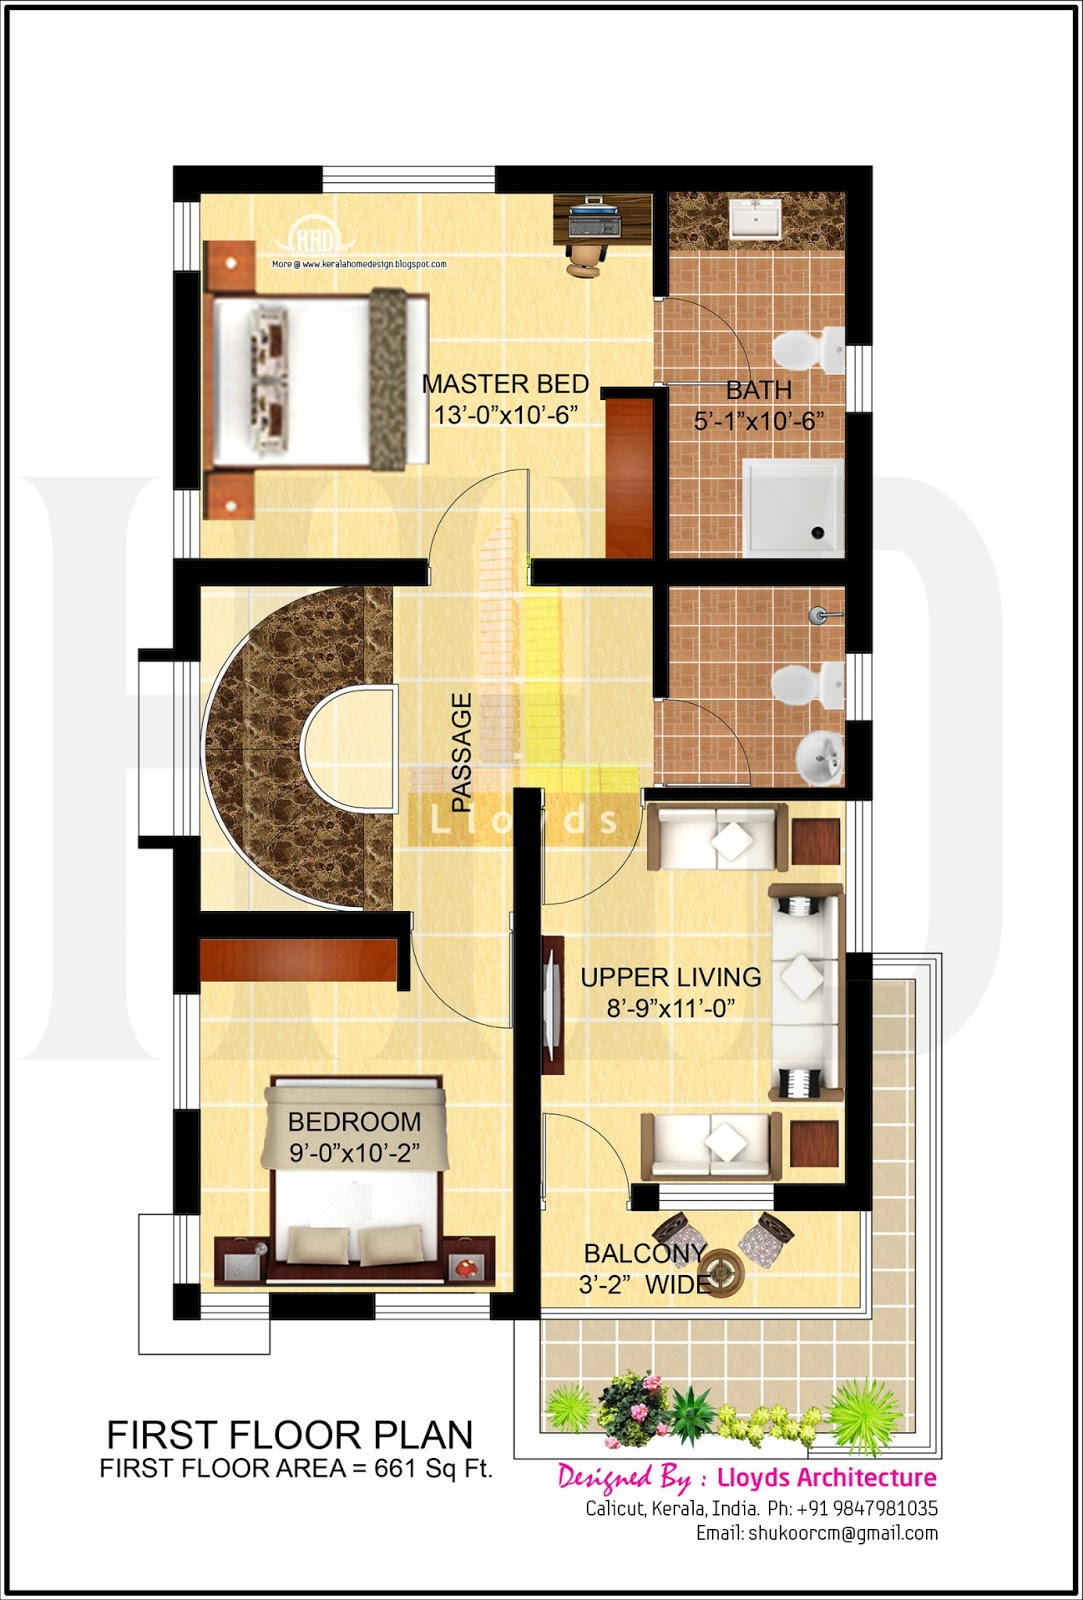 4 bedroom house plan in less than 3 cents kerala home for 4 bedroom house plans kerala style architect